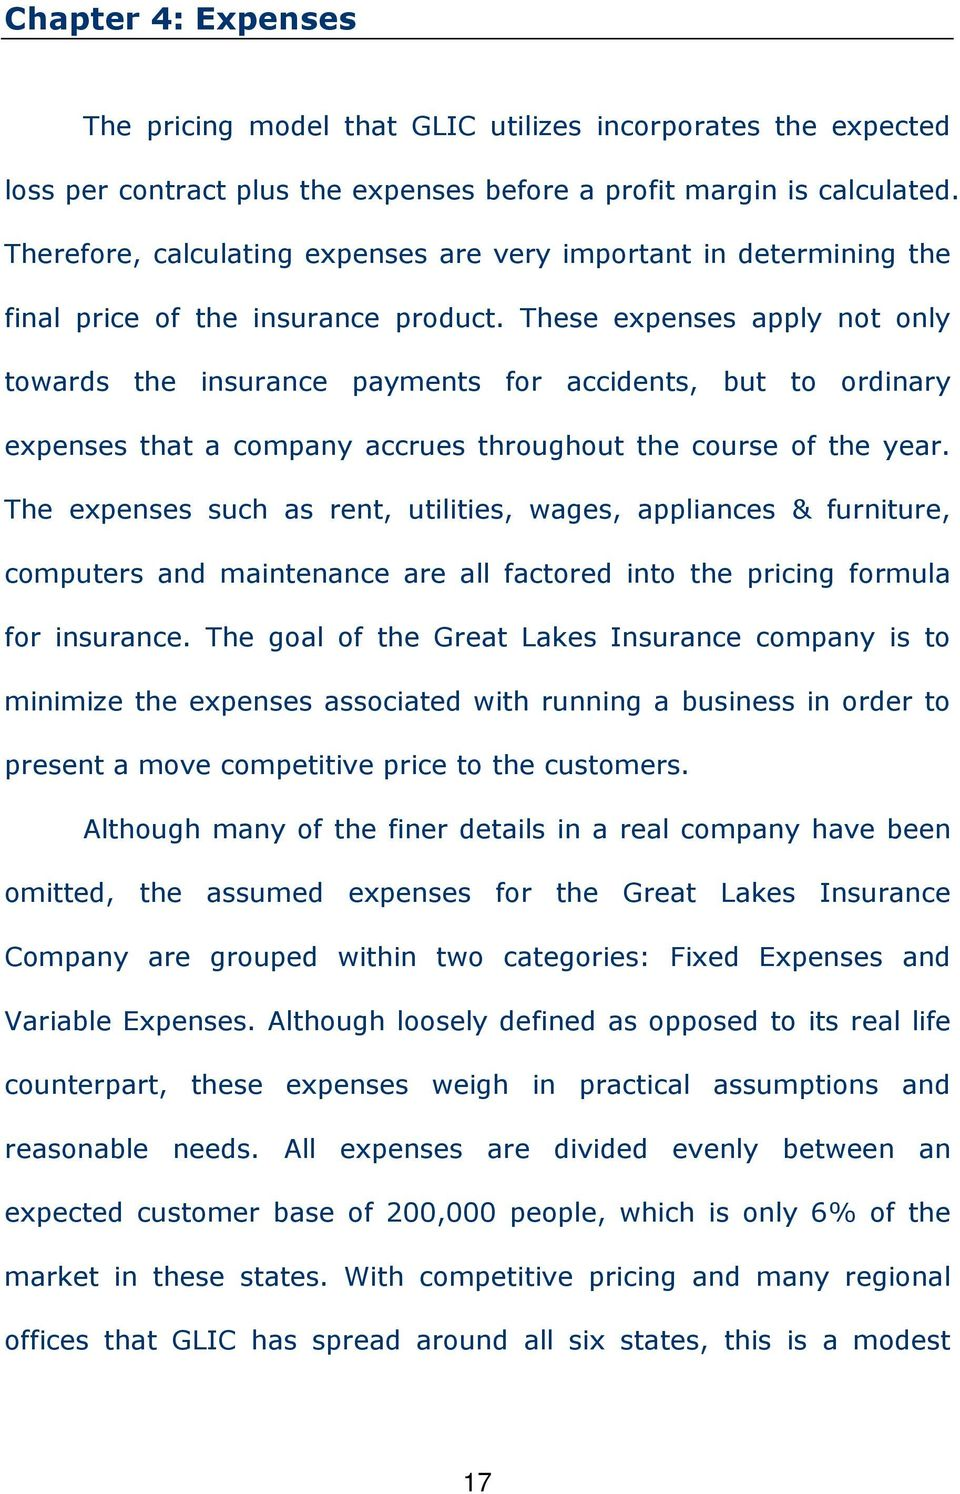 These expenses apply not only towards the insurance payments for accidents, but to ordinary expenses that a company accrues throughout the course of the year.